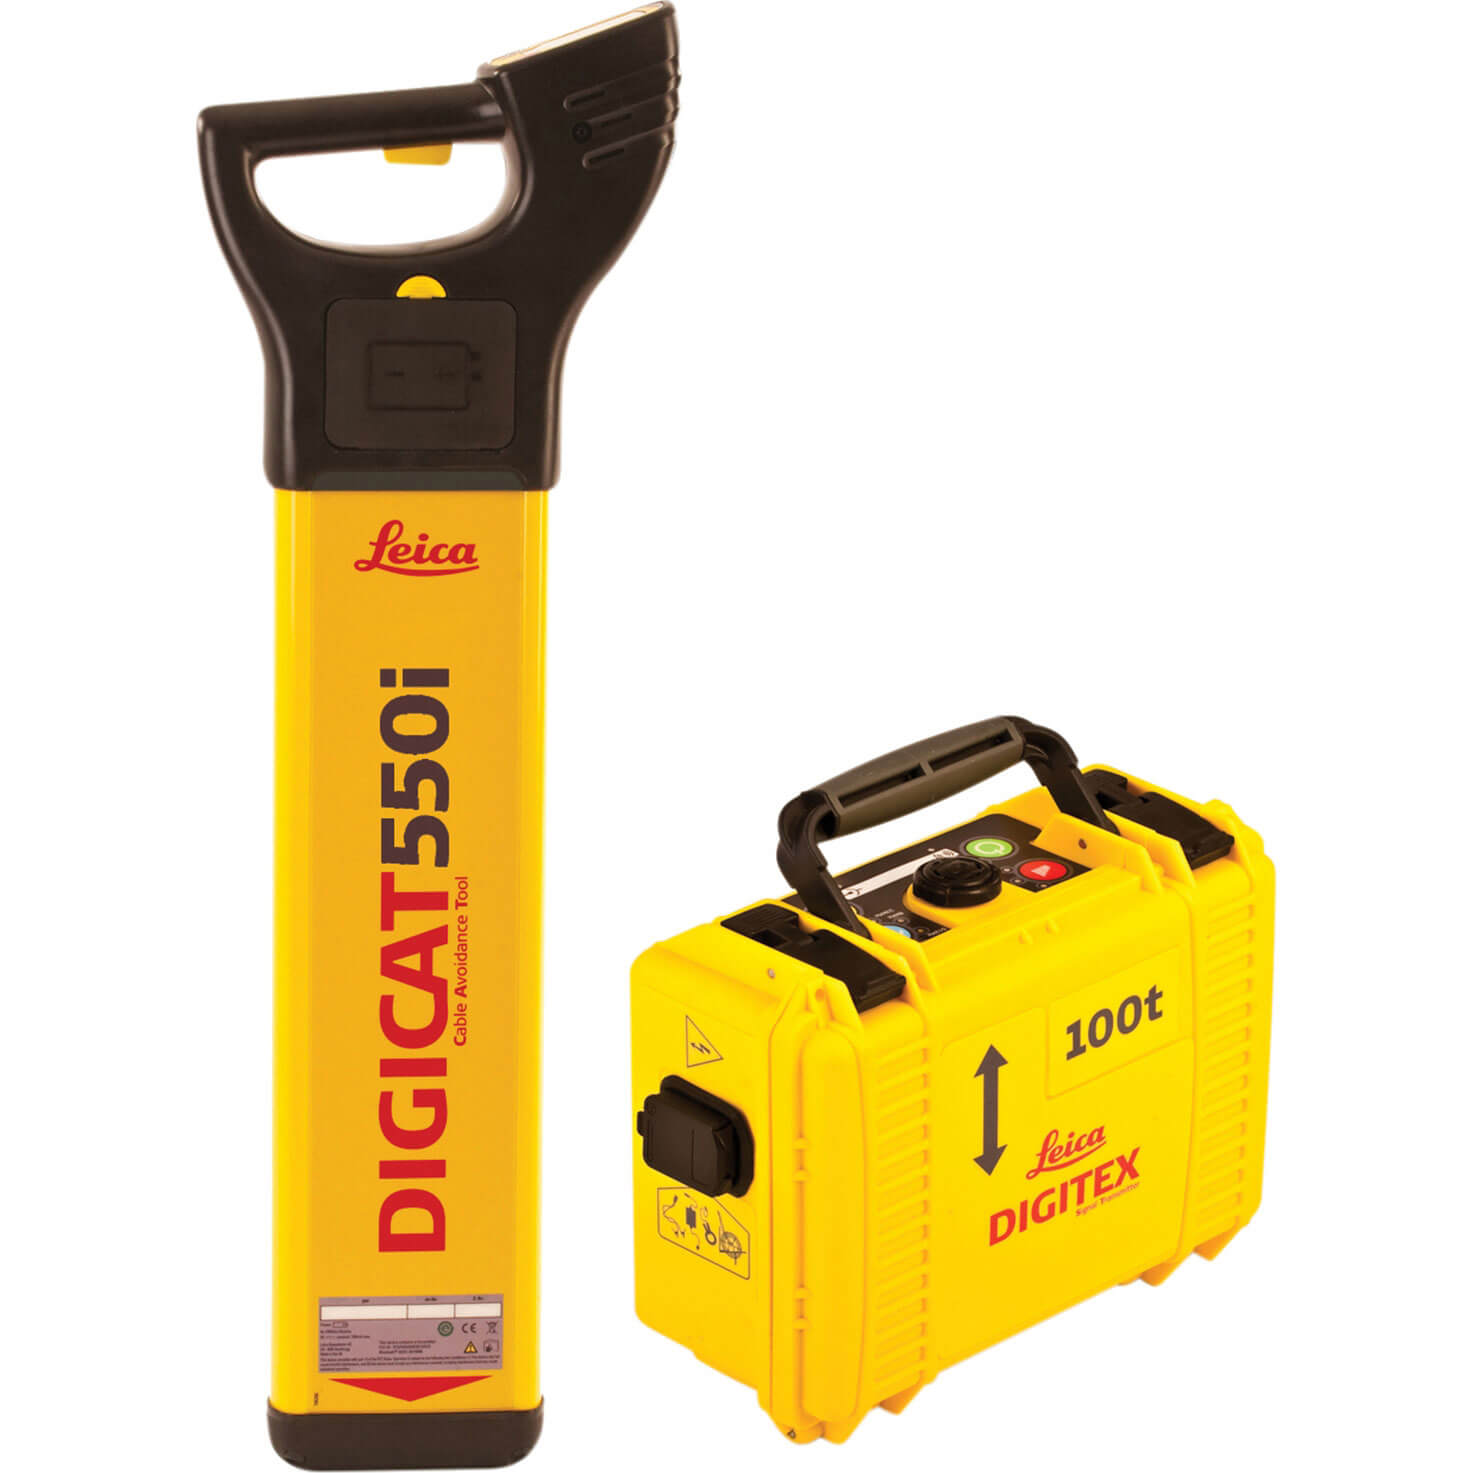 Image of Leica Geosystems Digicat 550L Utility Detector Kit